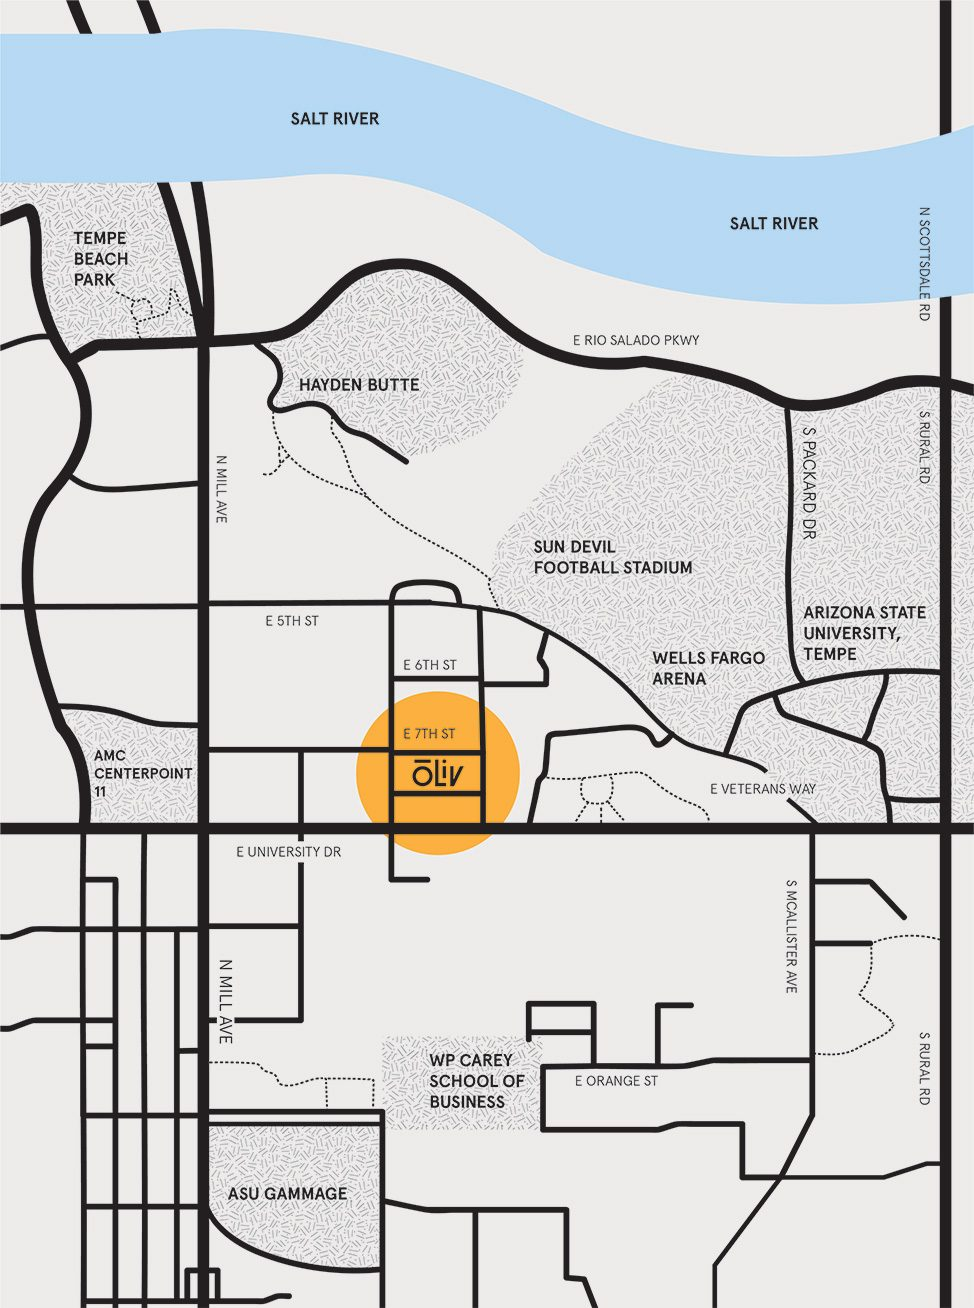 OLIV Tempe Location Map